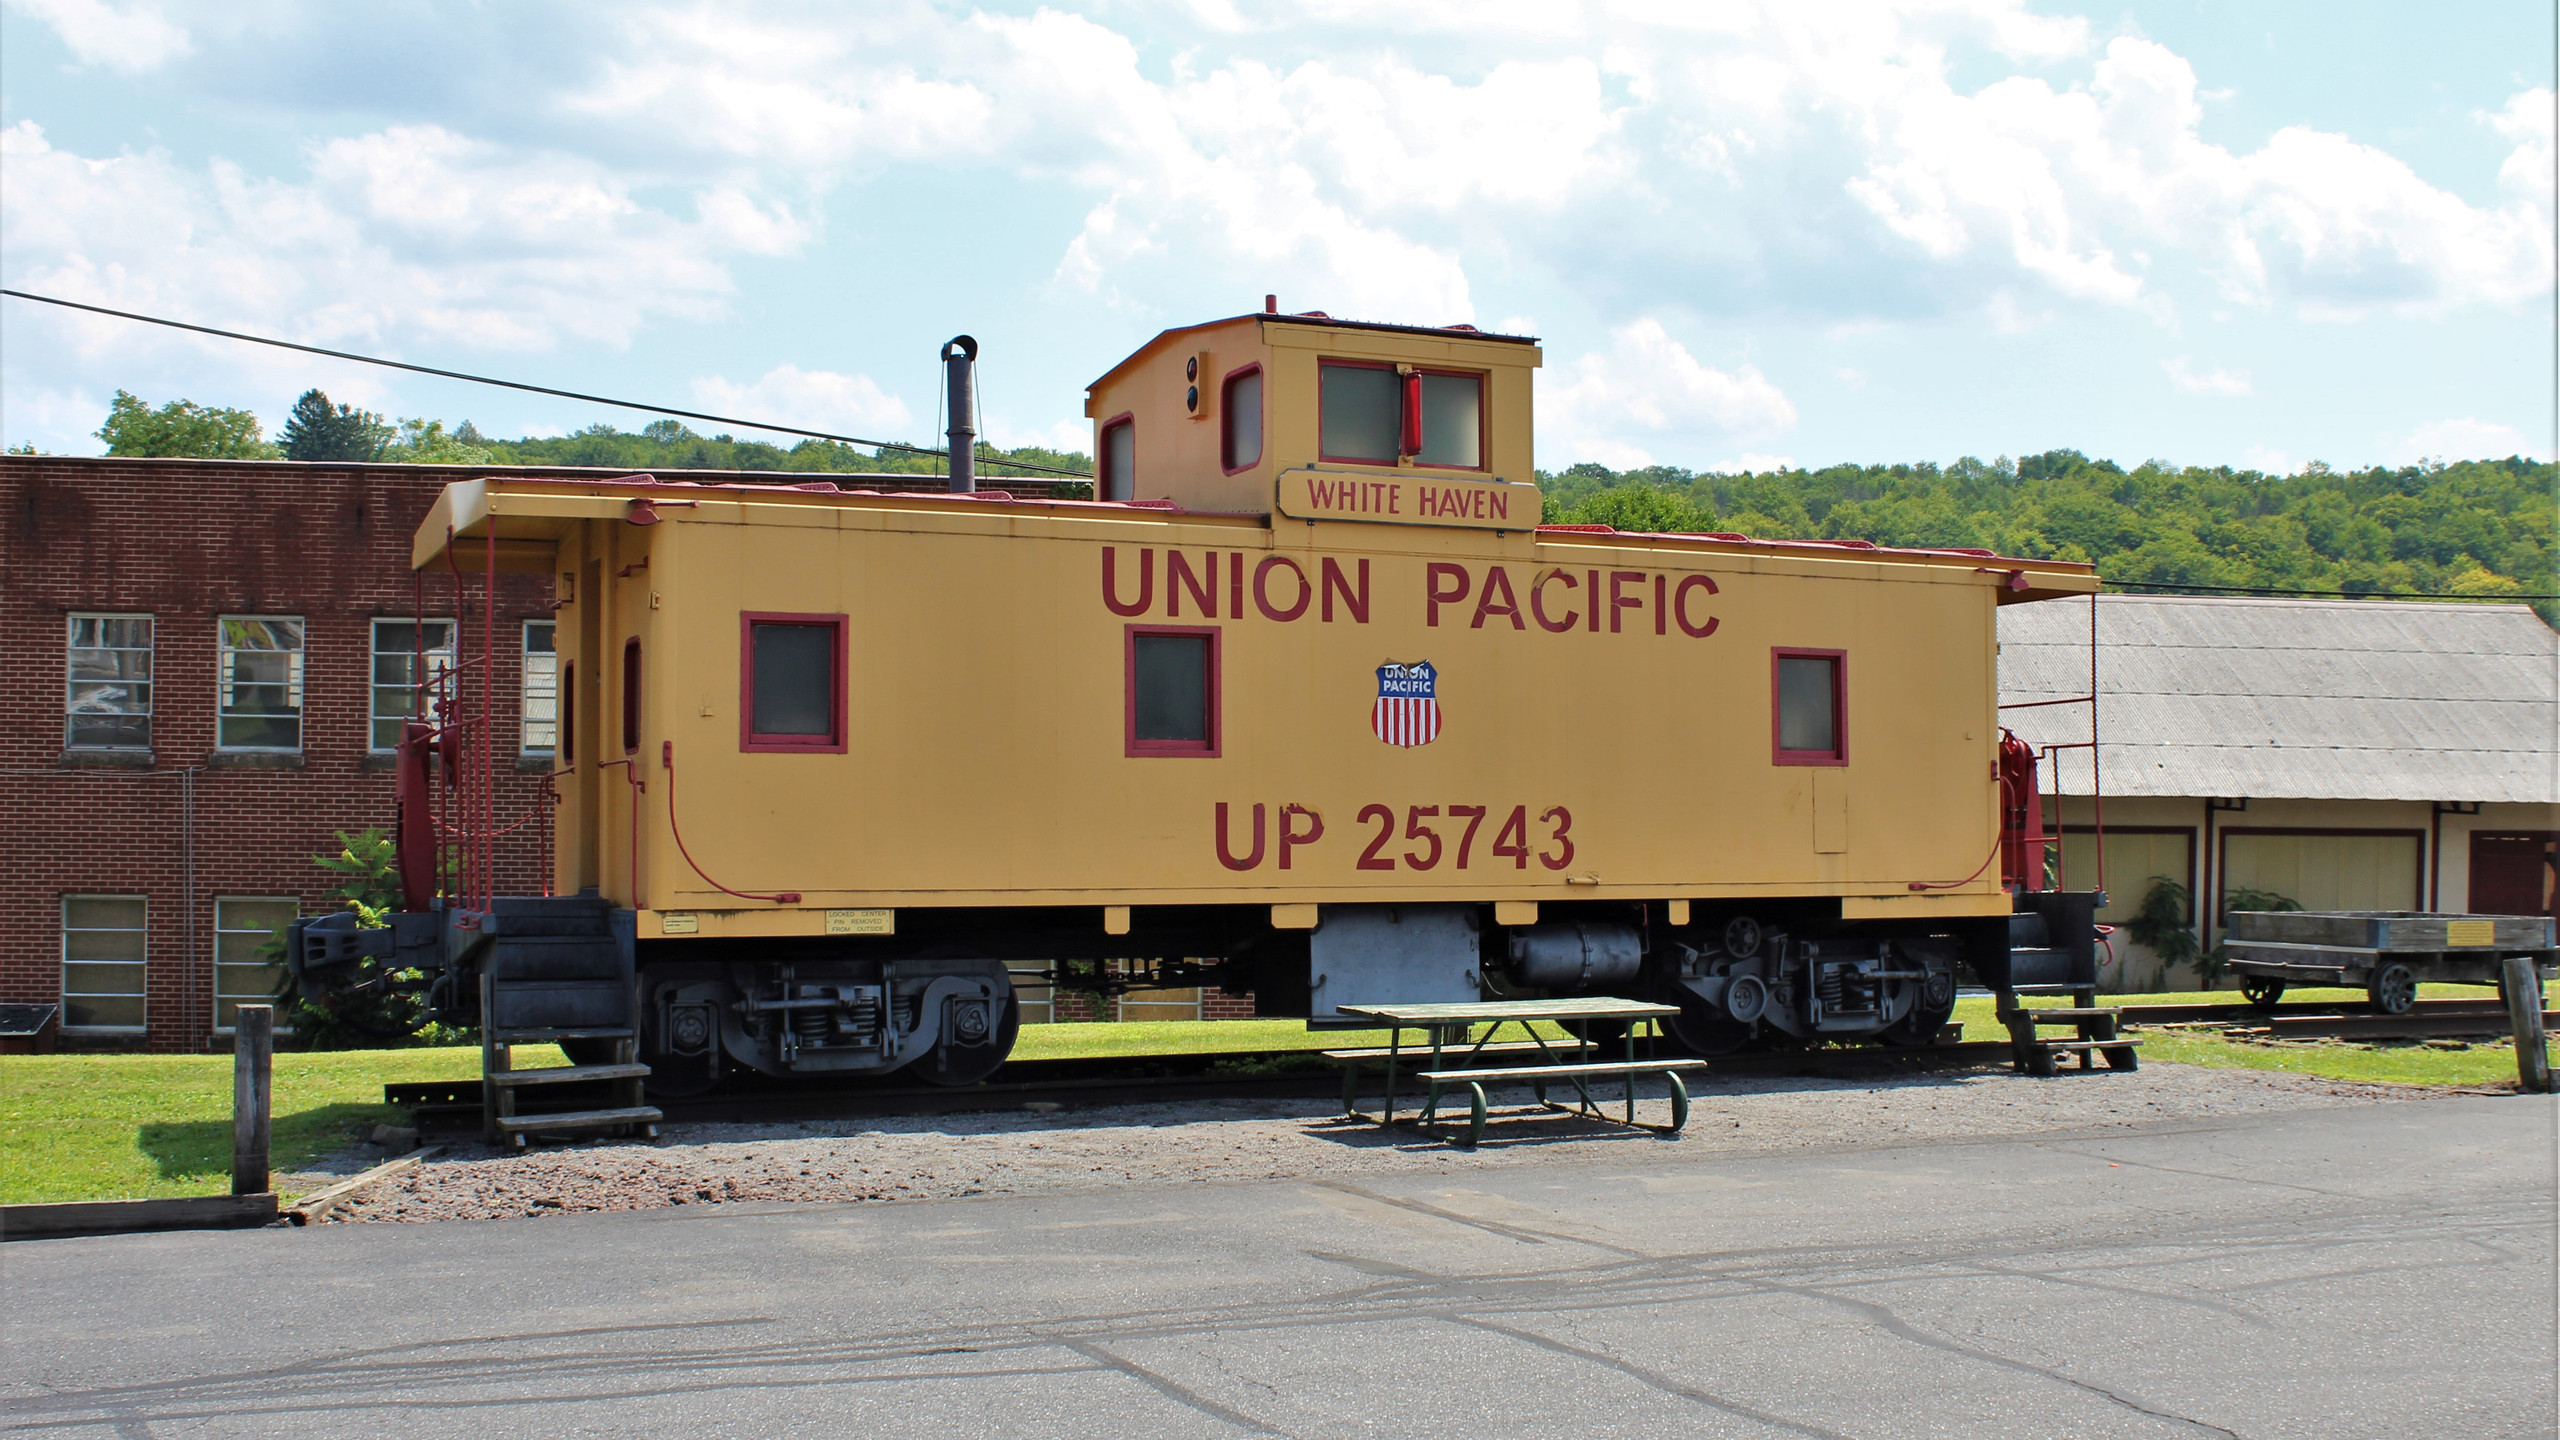 Union Pacific Caboose in White Haven